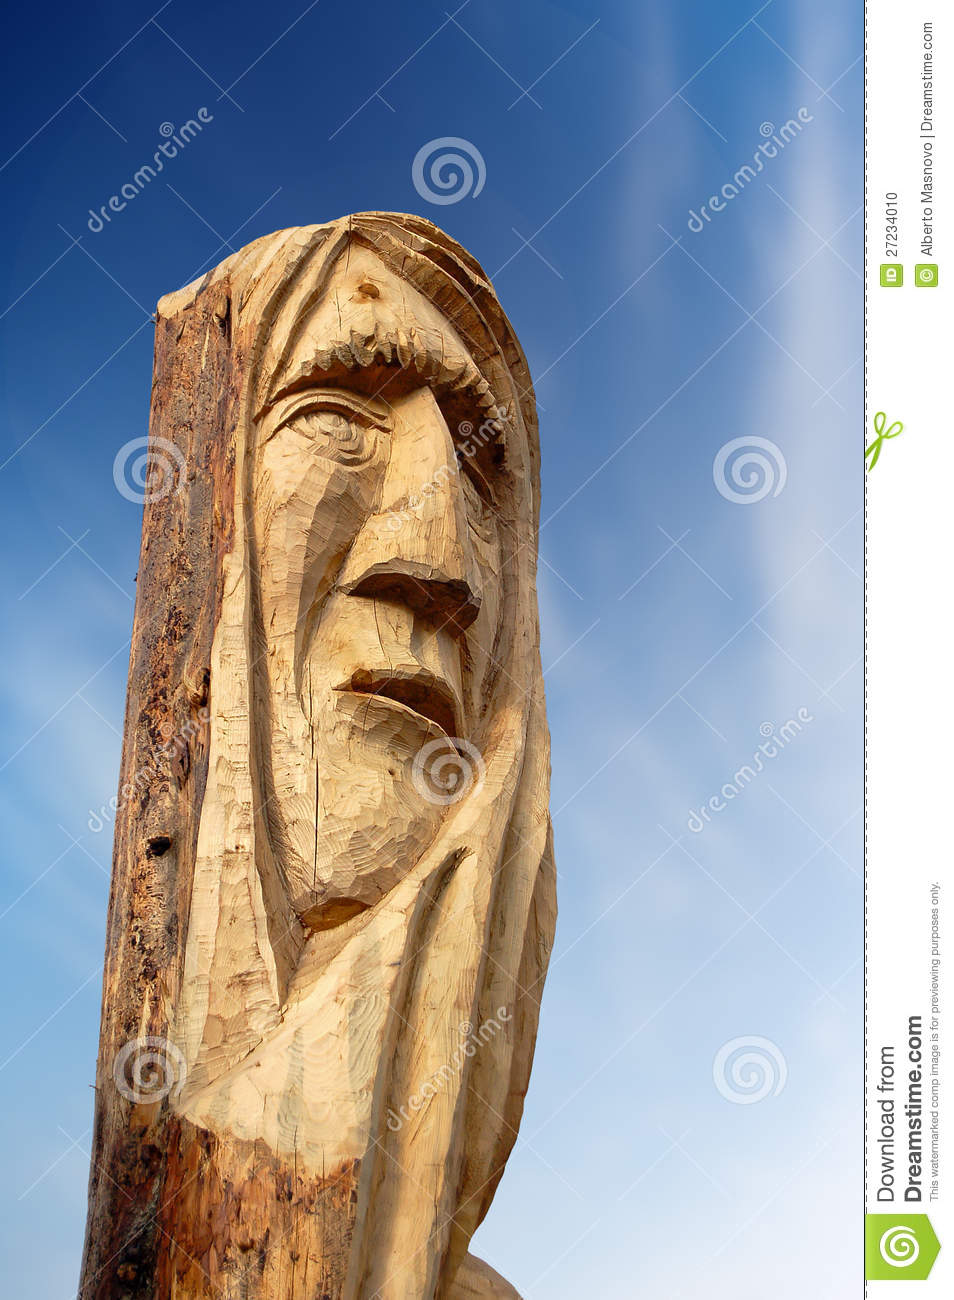 Face Carved on Tree Trunk stock photo. Image of sculpture ...